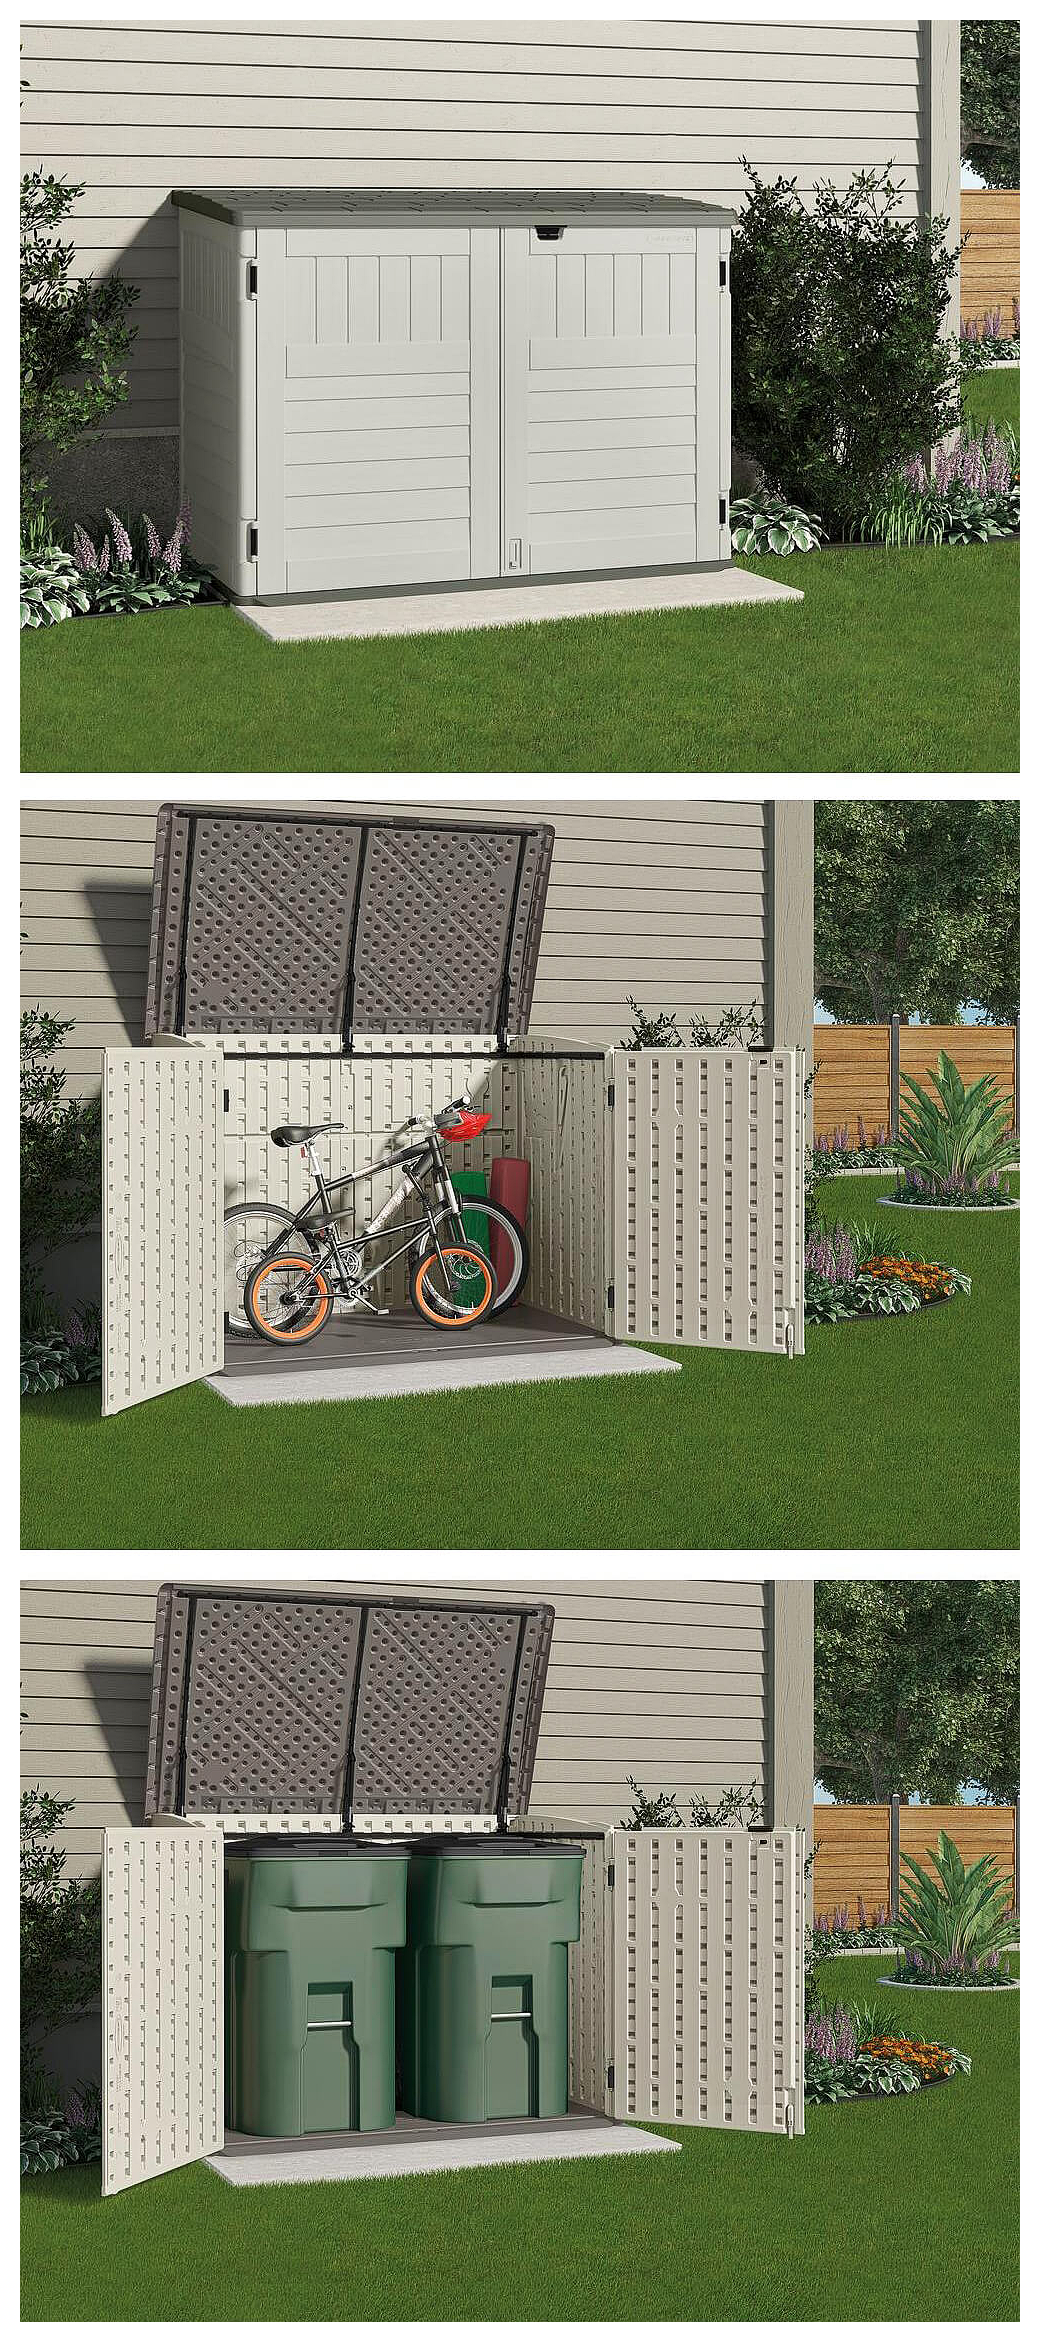 23..SIMPHOME.COM best small storage shed projects ideas and designs for 2022